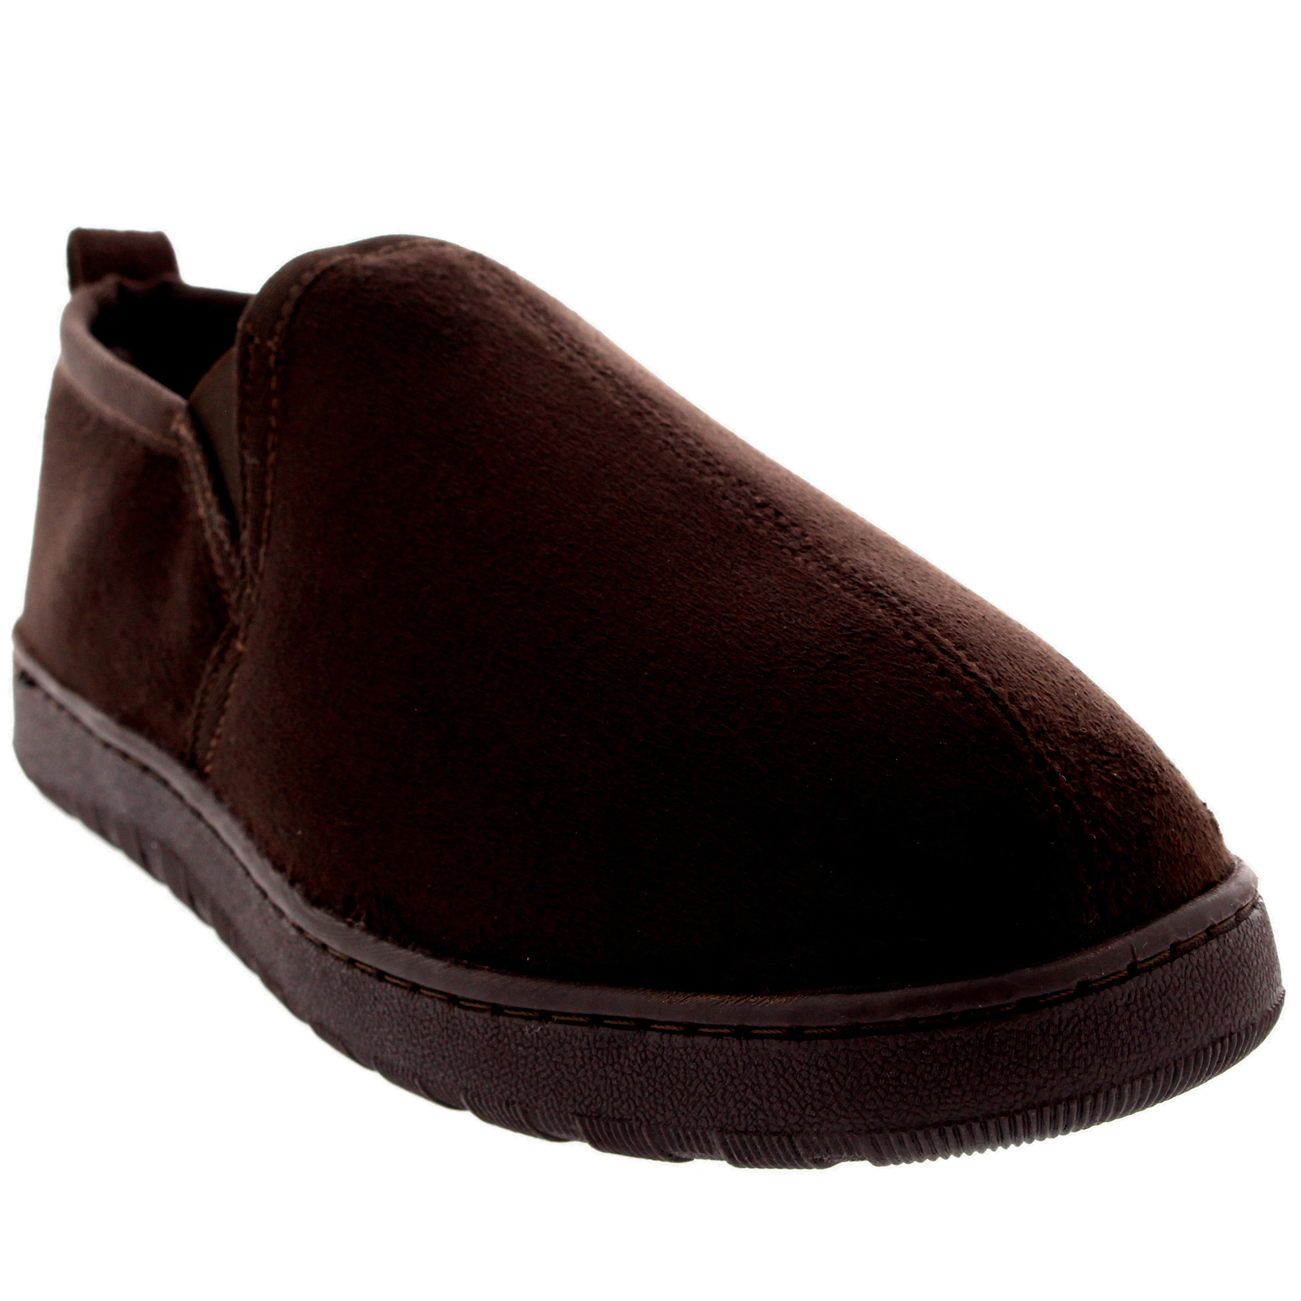 Mens Loafer Slip On Warm Cosy Winter Moccasin Fur Lined Slipper Shoes US 7-15 | EBay